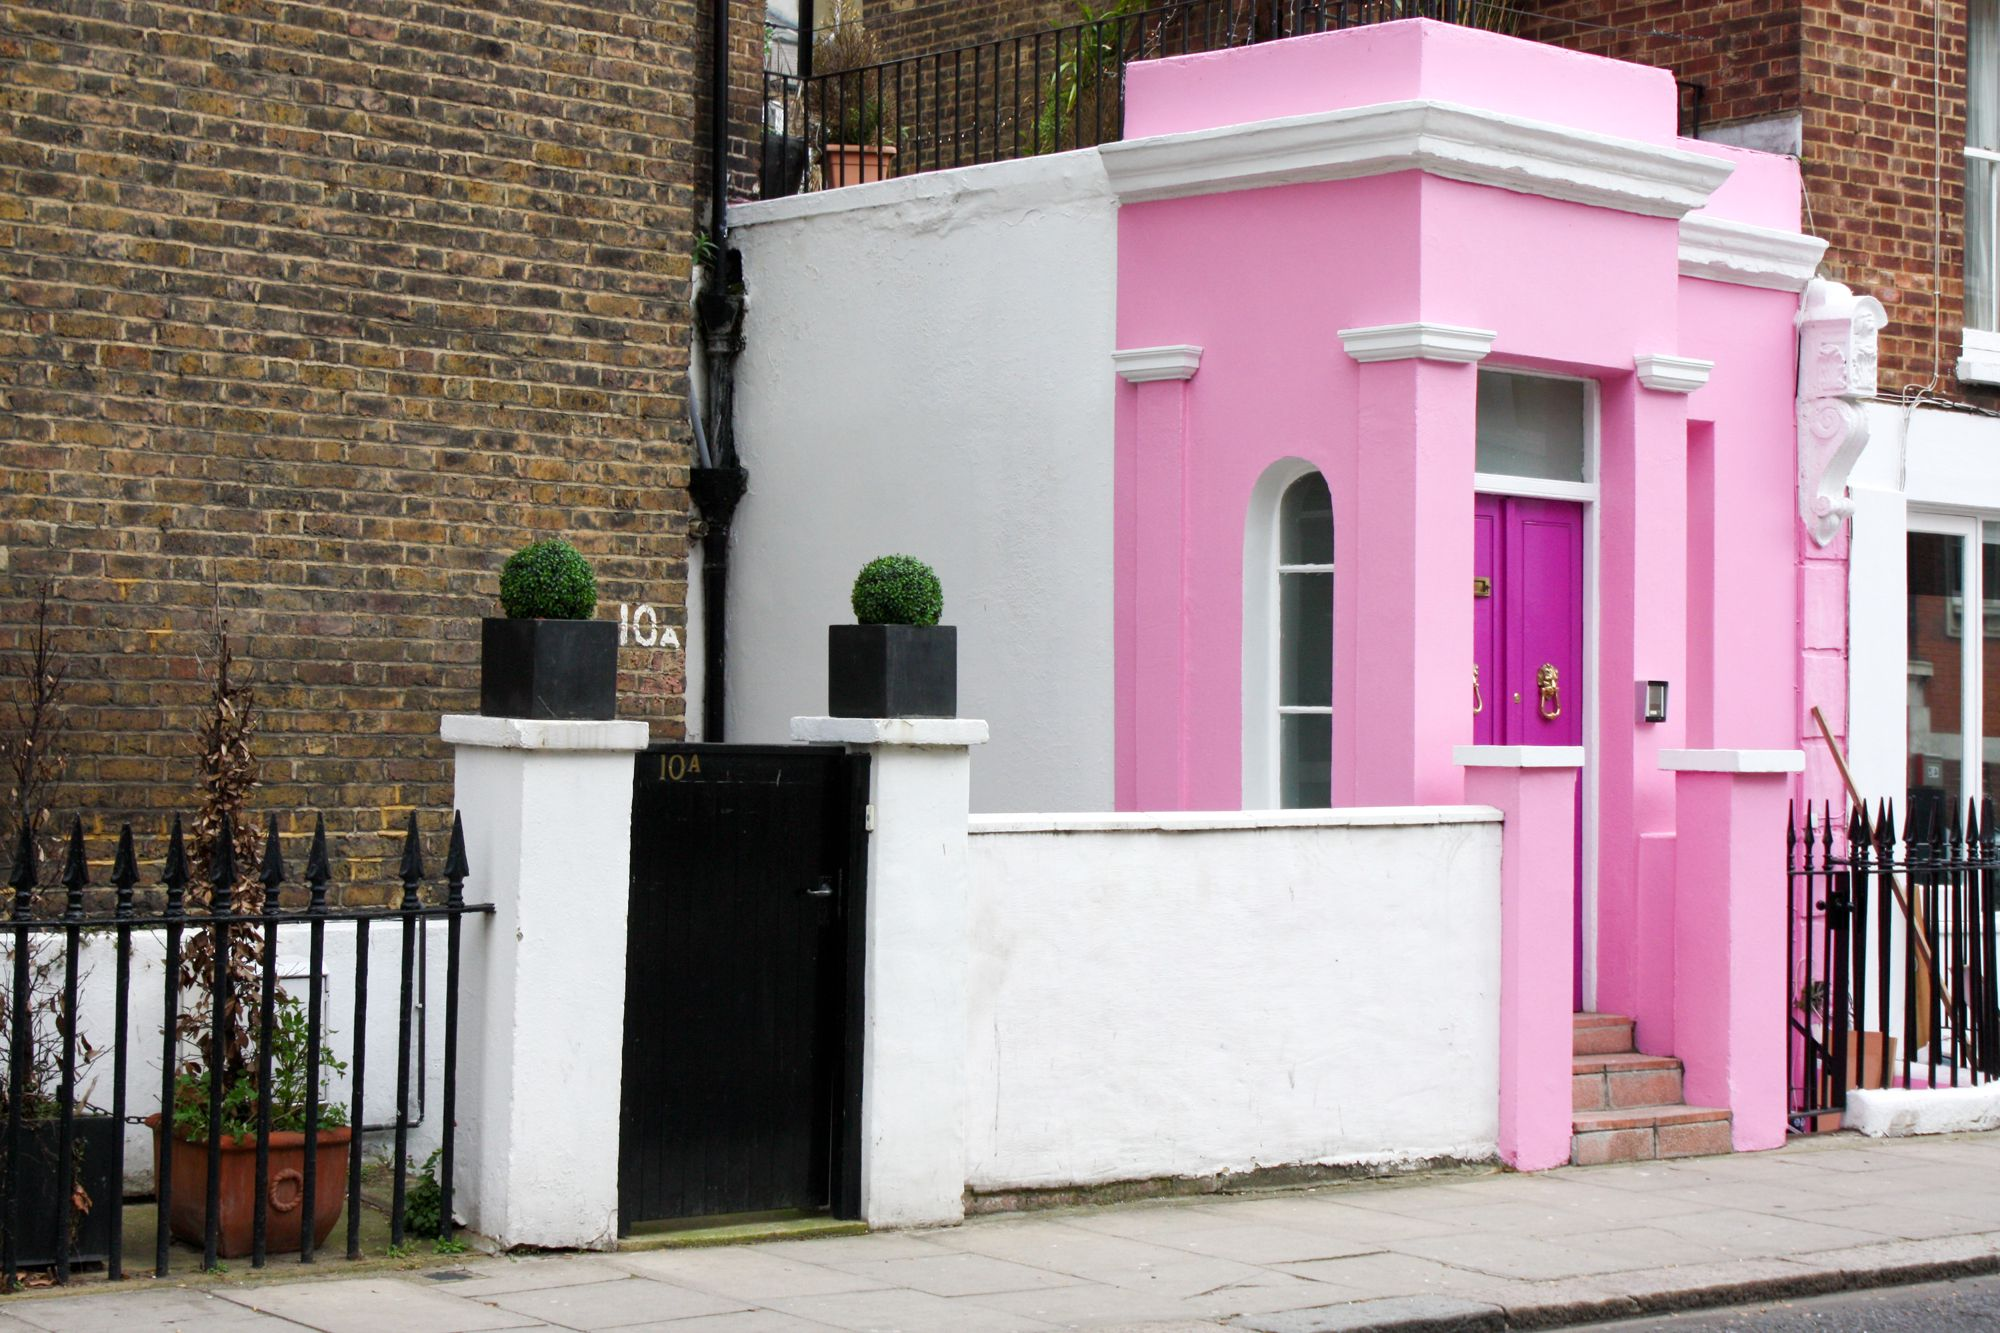 The Cool Places guide to the cosmopolitan London neighbourhood of Notting Hill